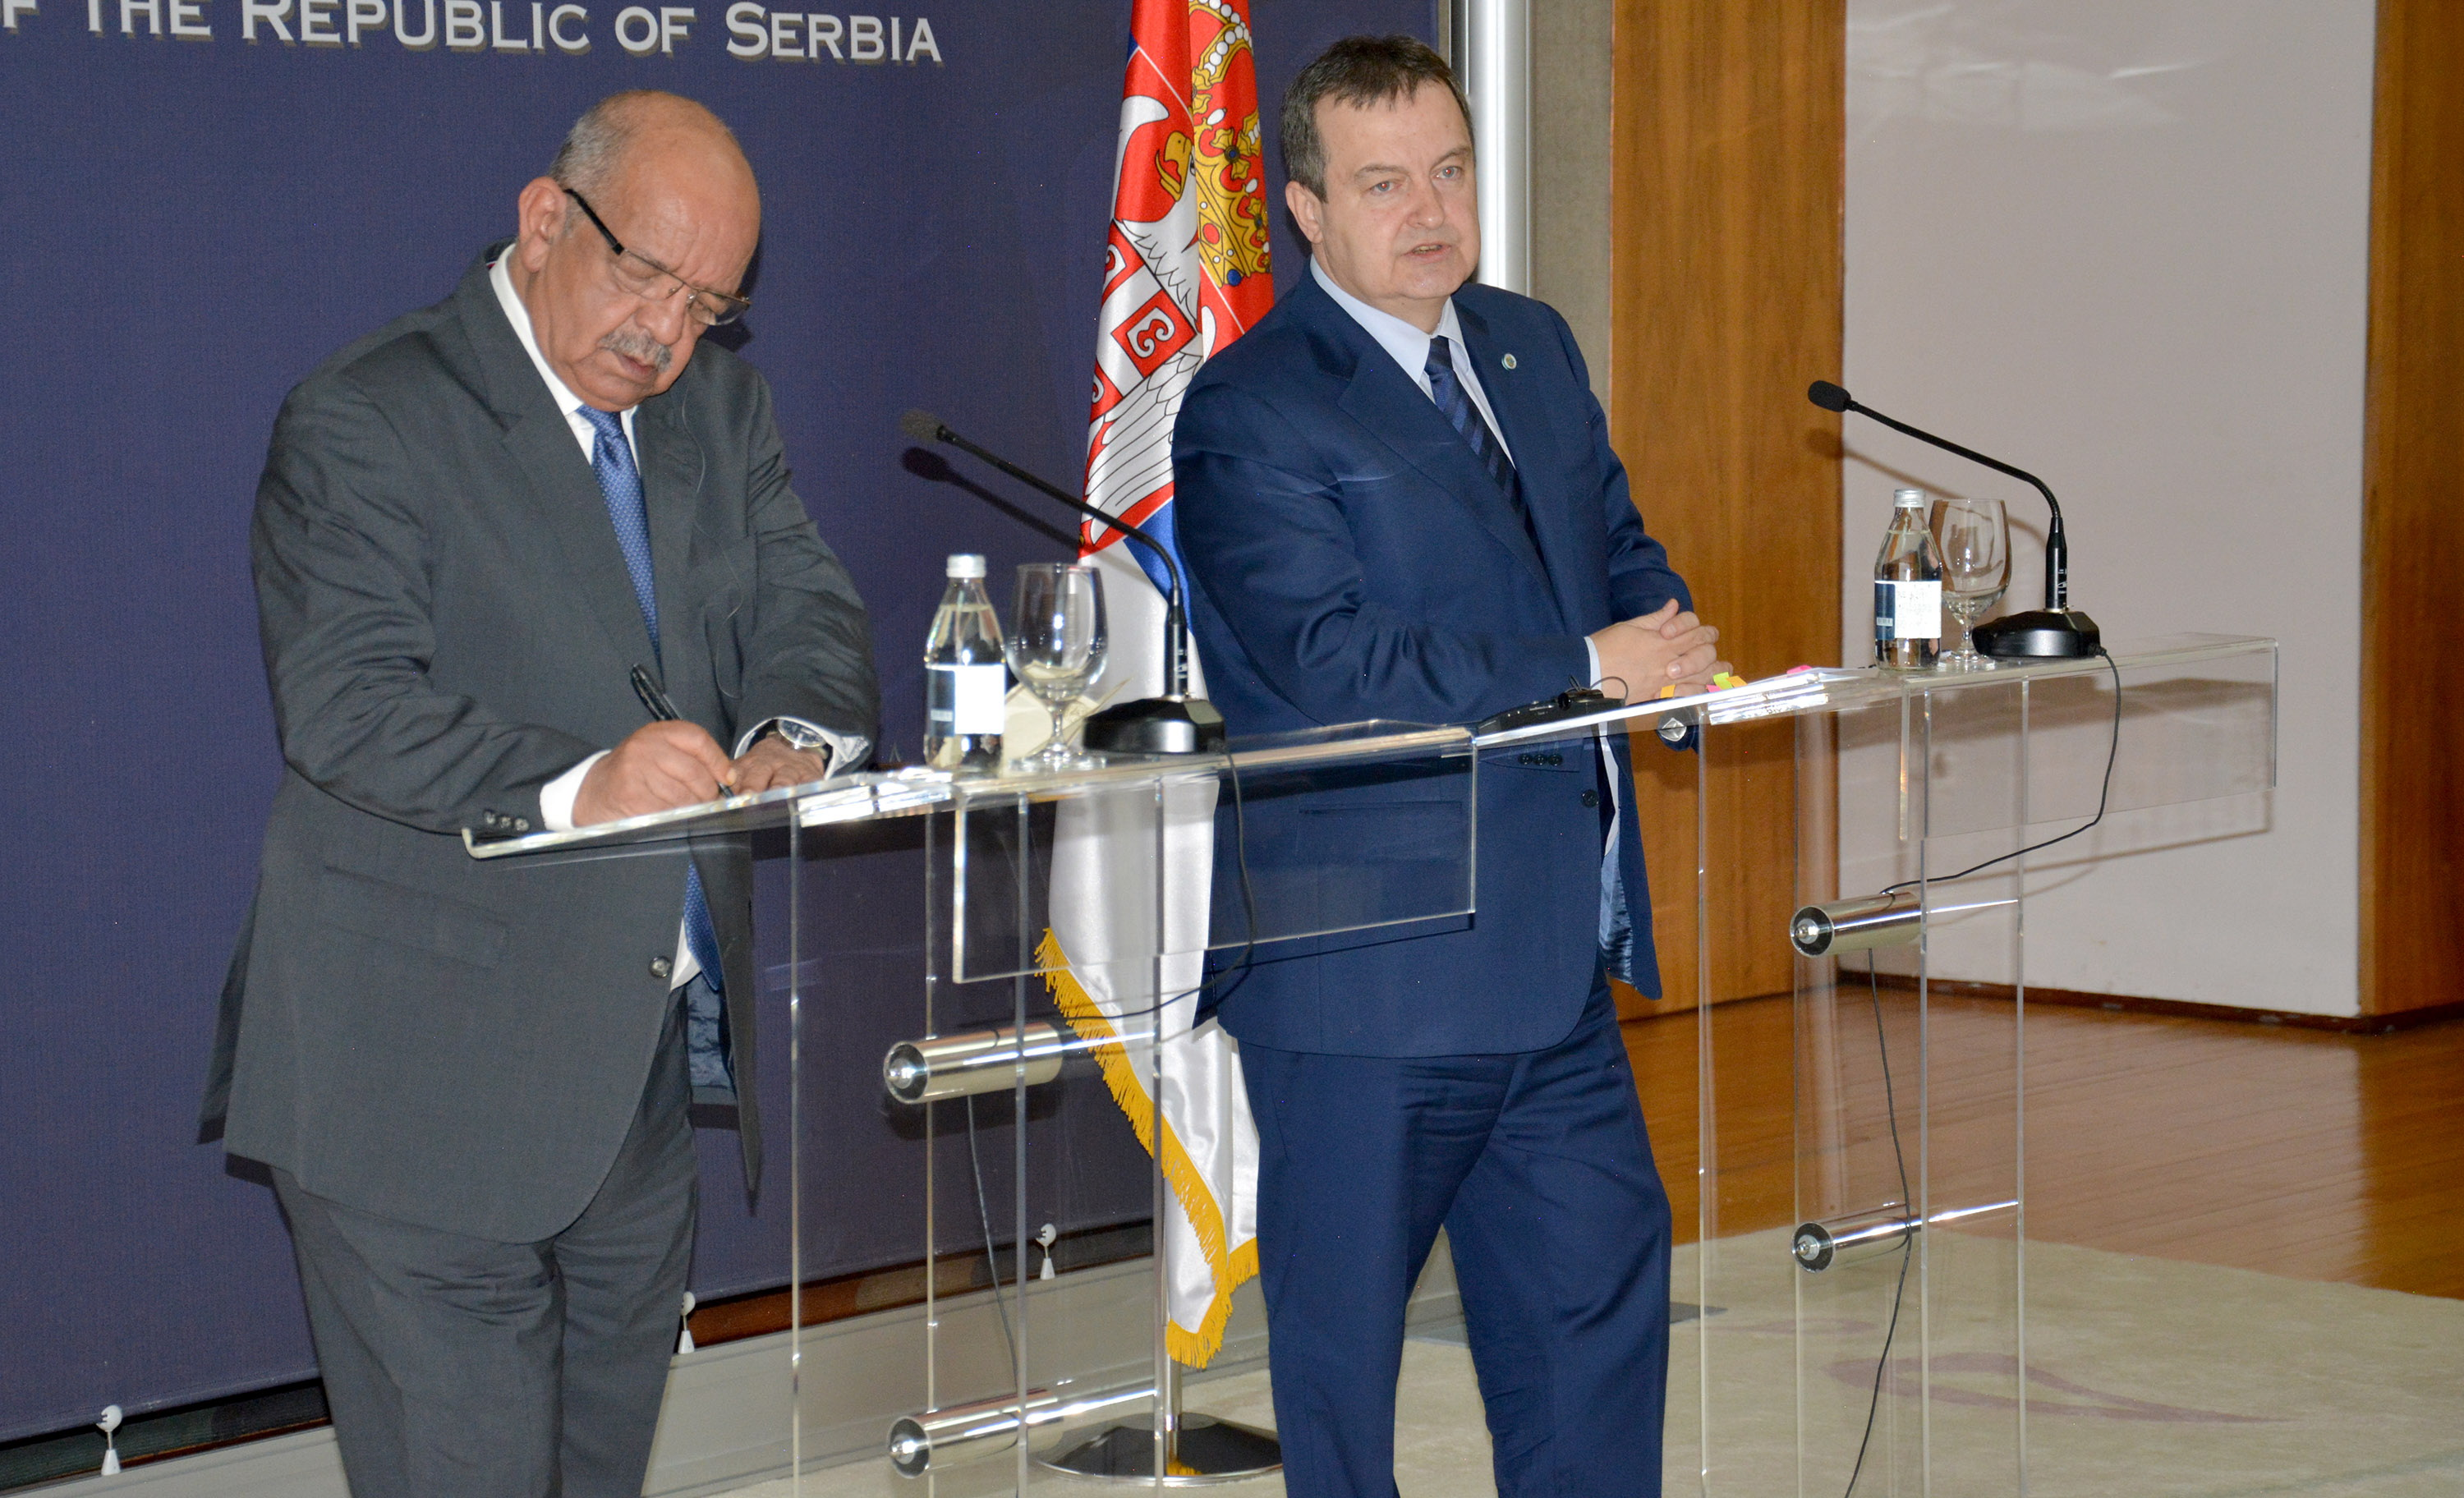 Ivica Dacic and Mr. Abdelkader Messahel